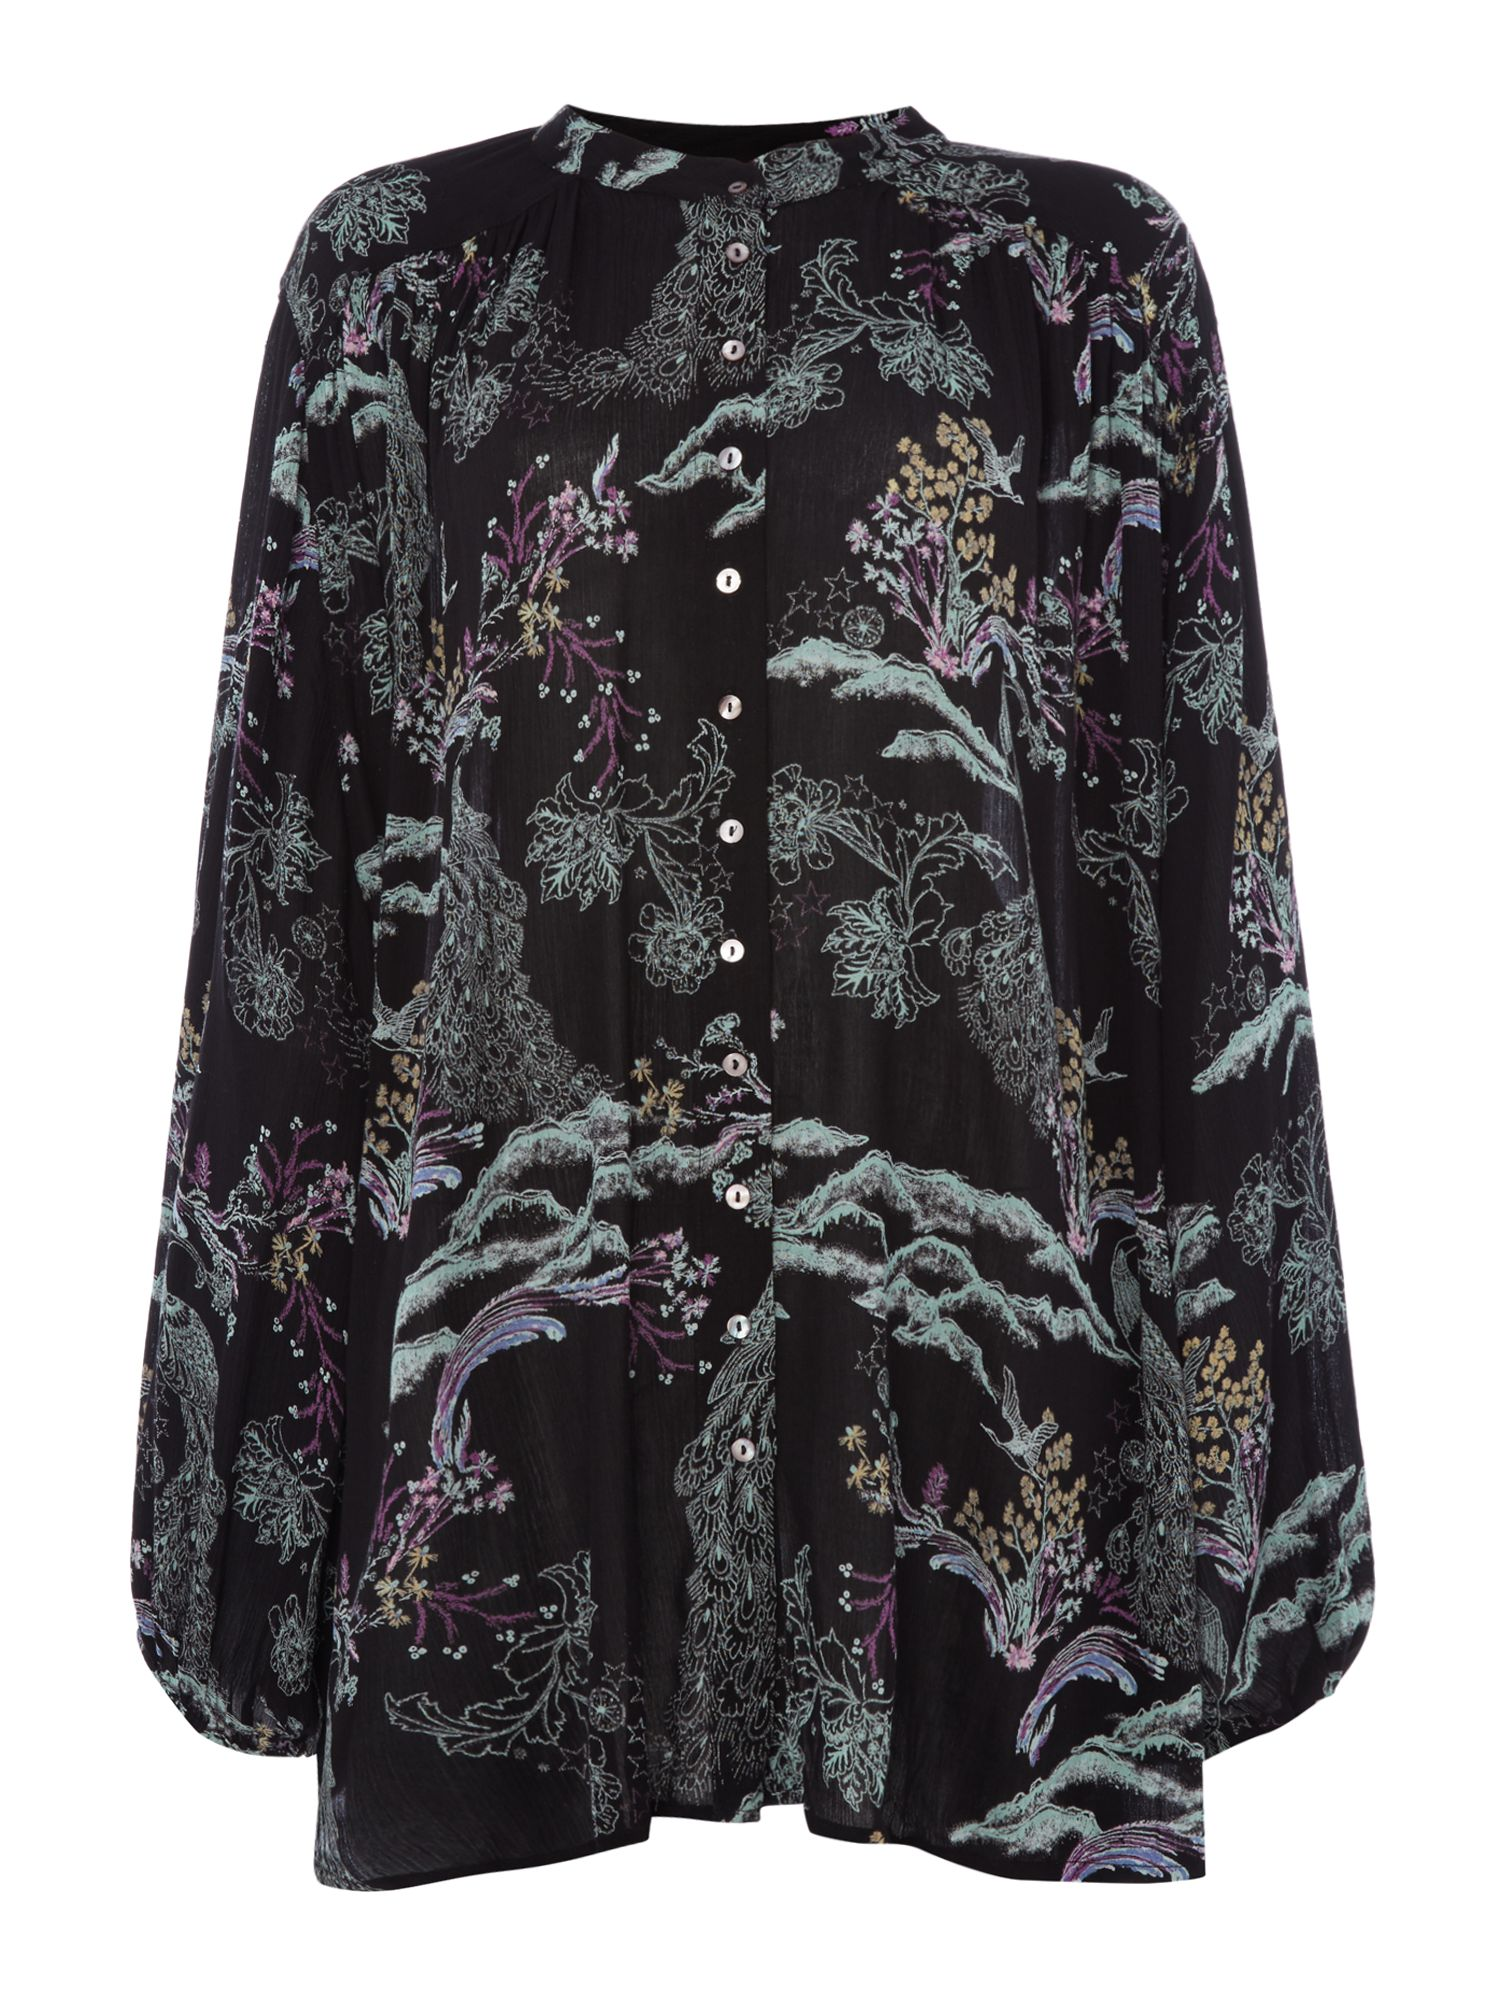 Free People Oversized Shirt With Metalic Bloom Print, Black